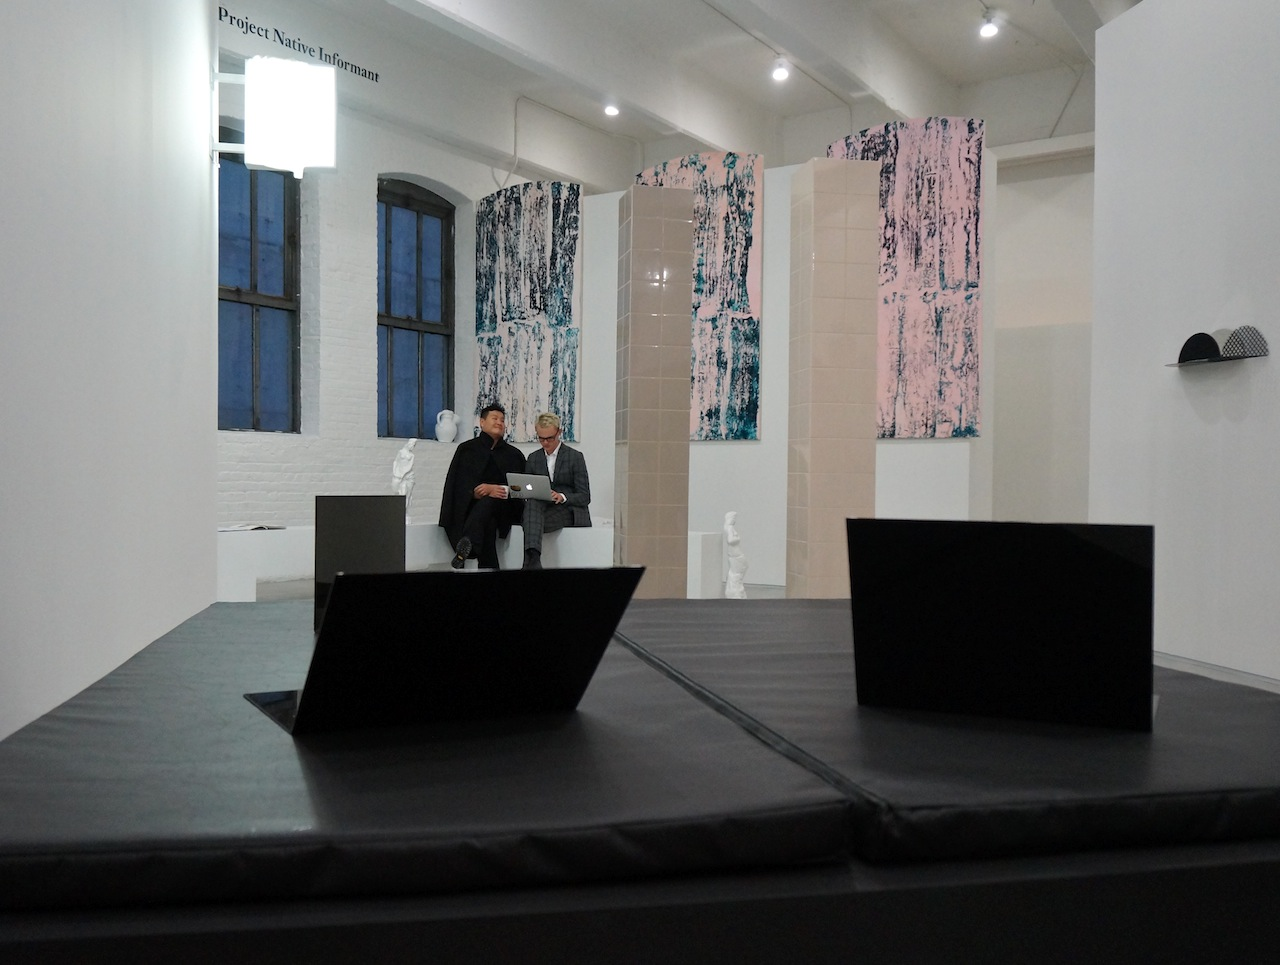 Work by Prem Sahib, at Gallerie Lorcan O'Neill and Southard Reid's shared booth, in the foreground, and Emanuel Röhss at Project Narrative Informant in the background